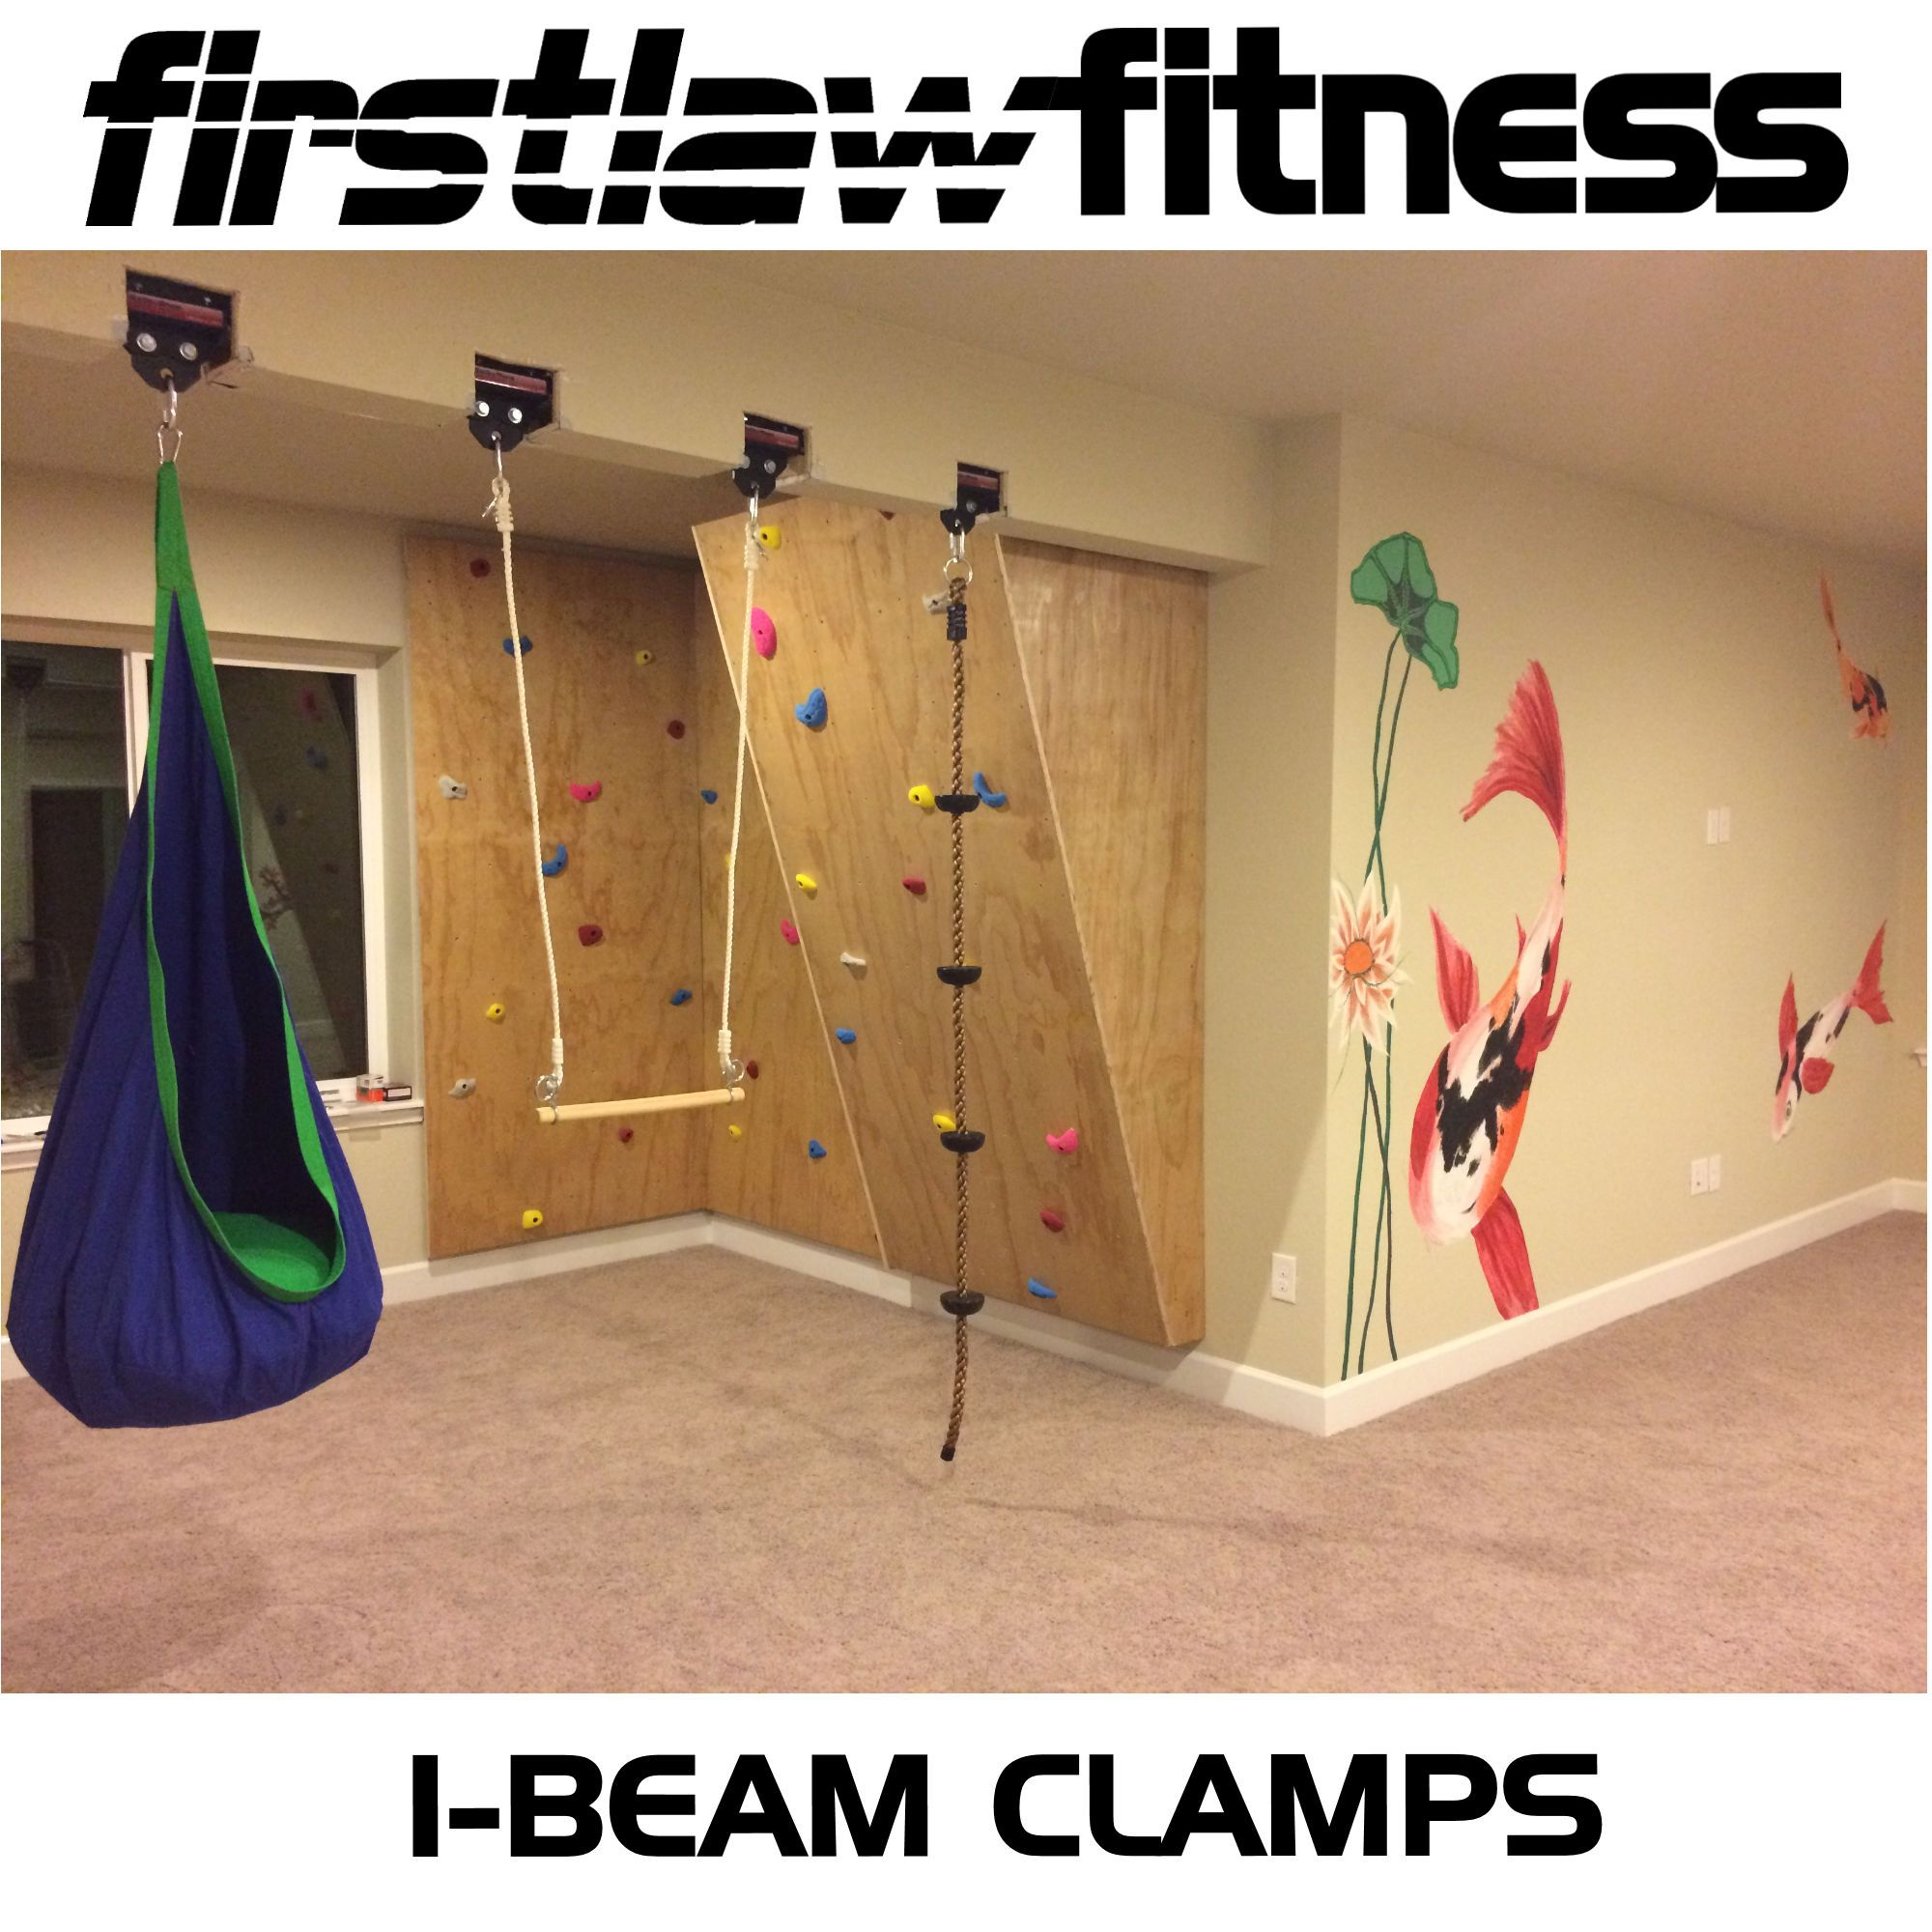 Check out this creative way to use our ibeam clamps